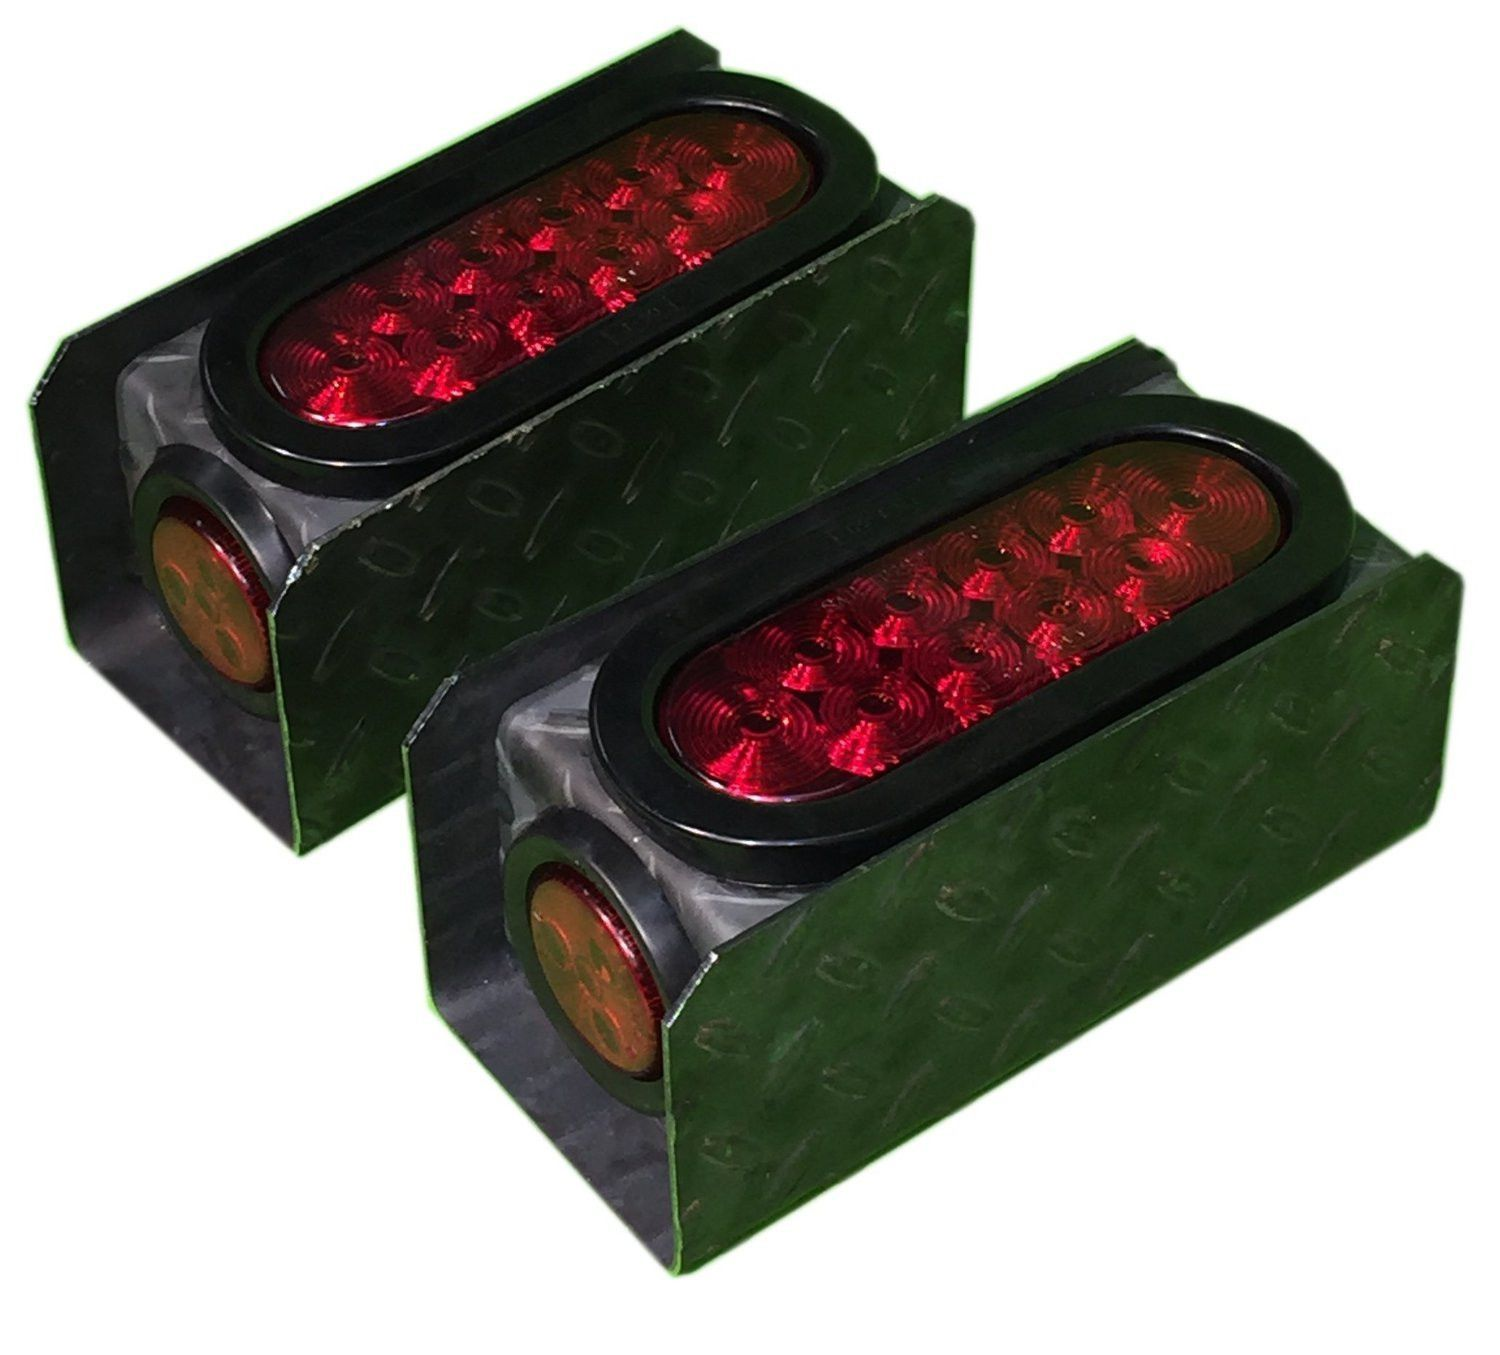 "2 Steel Tread Plate Trailer Light Boxes w/6"" LED Oval Tail Lights & 2"" LED  Red Round Side Lights"